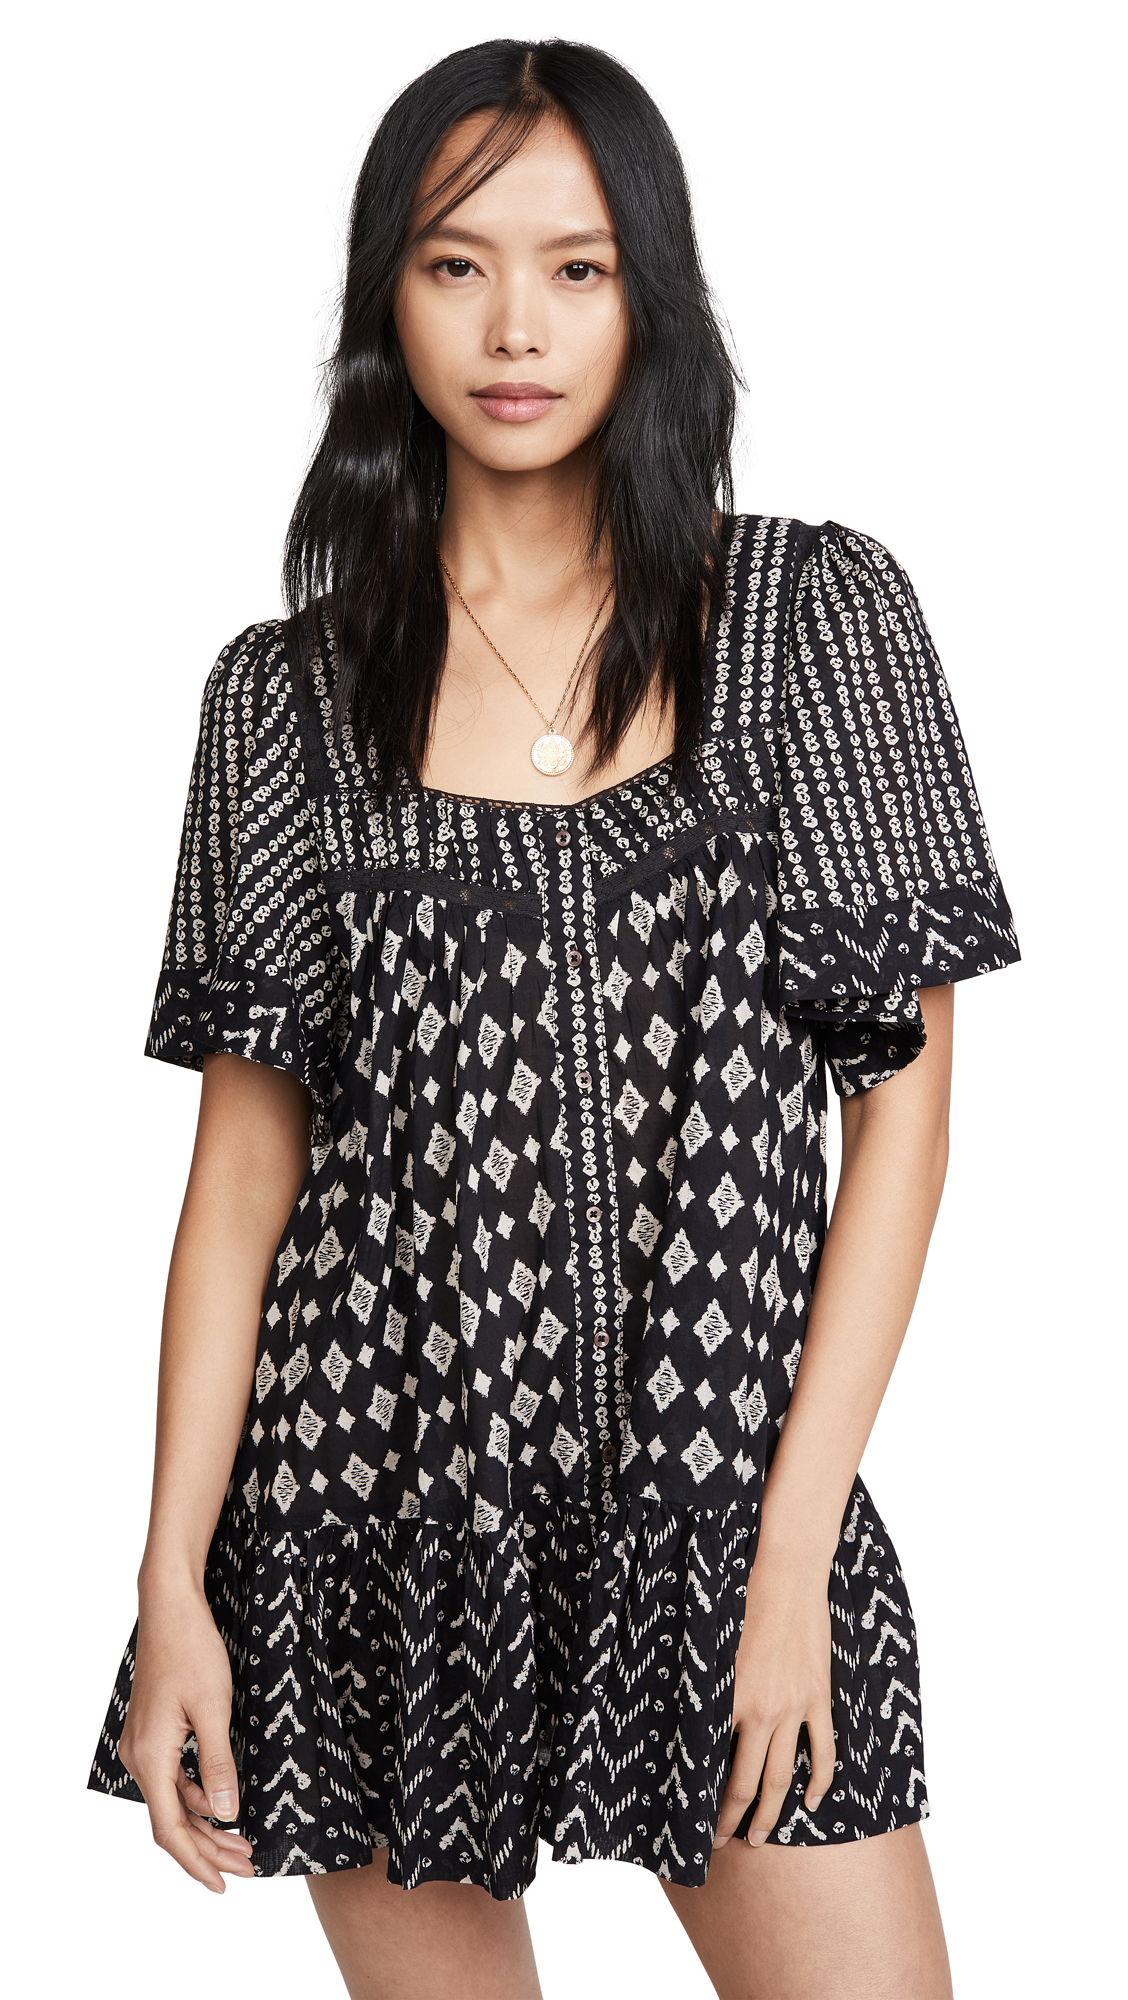 Free People Hearts Desire Printed Dress - 30% Off Sale